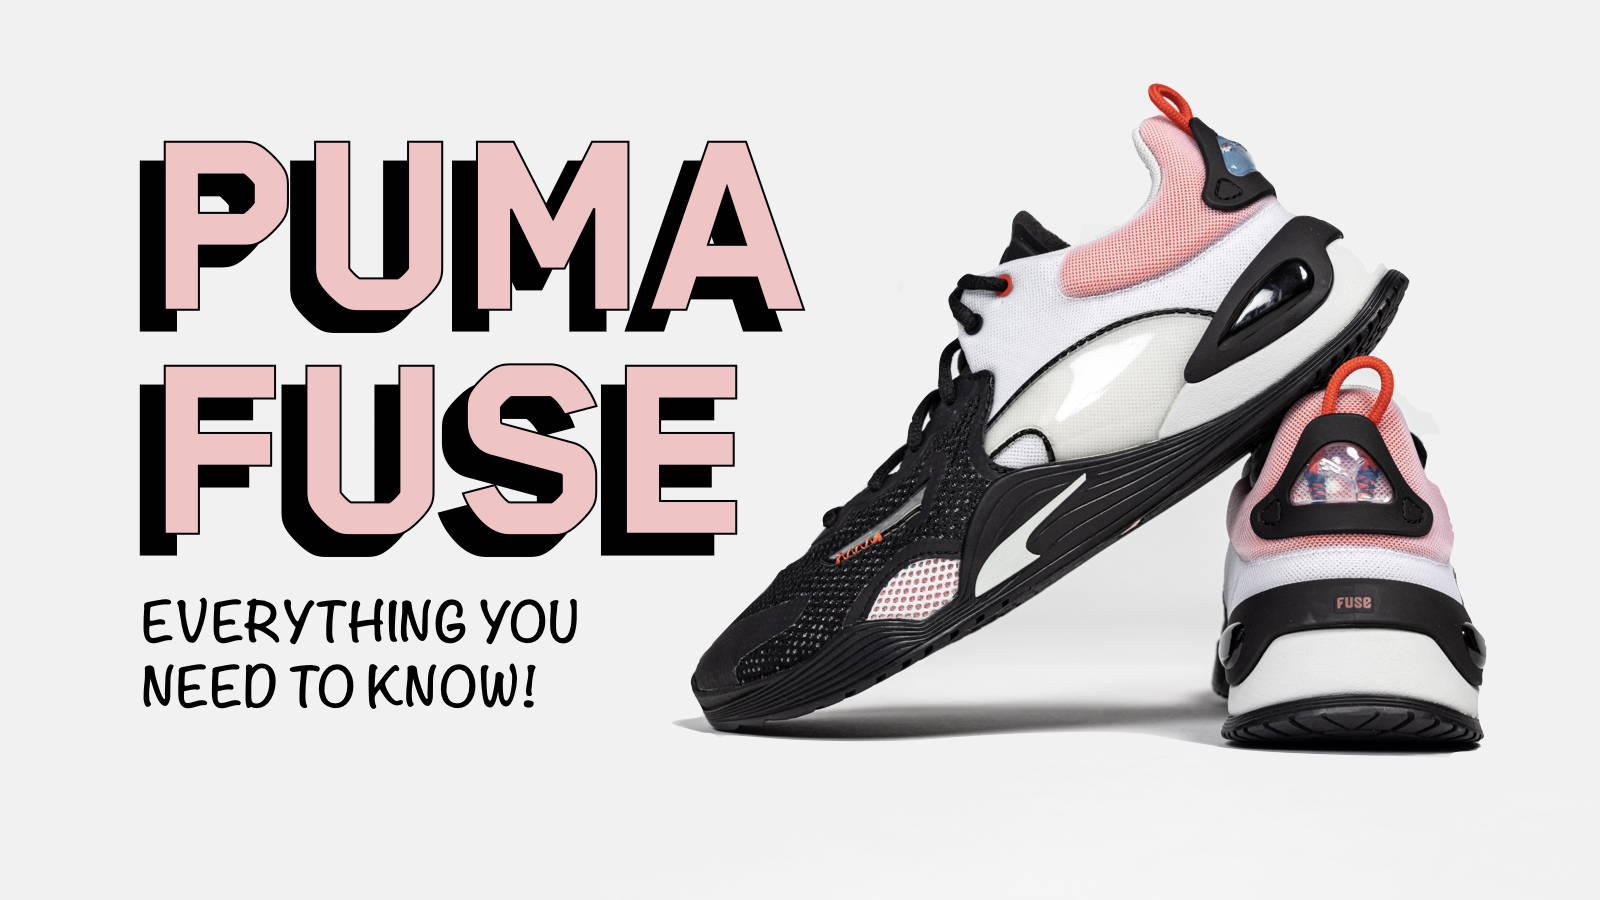 Everything you Need to Know About the Puma Fuse - WIT Fitness